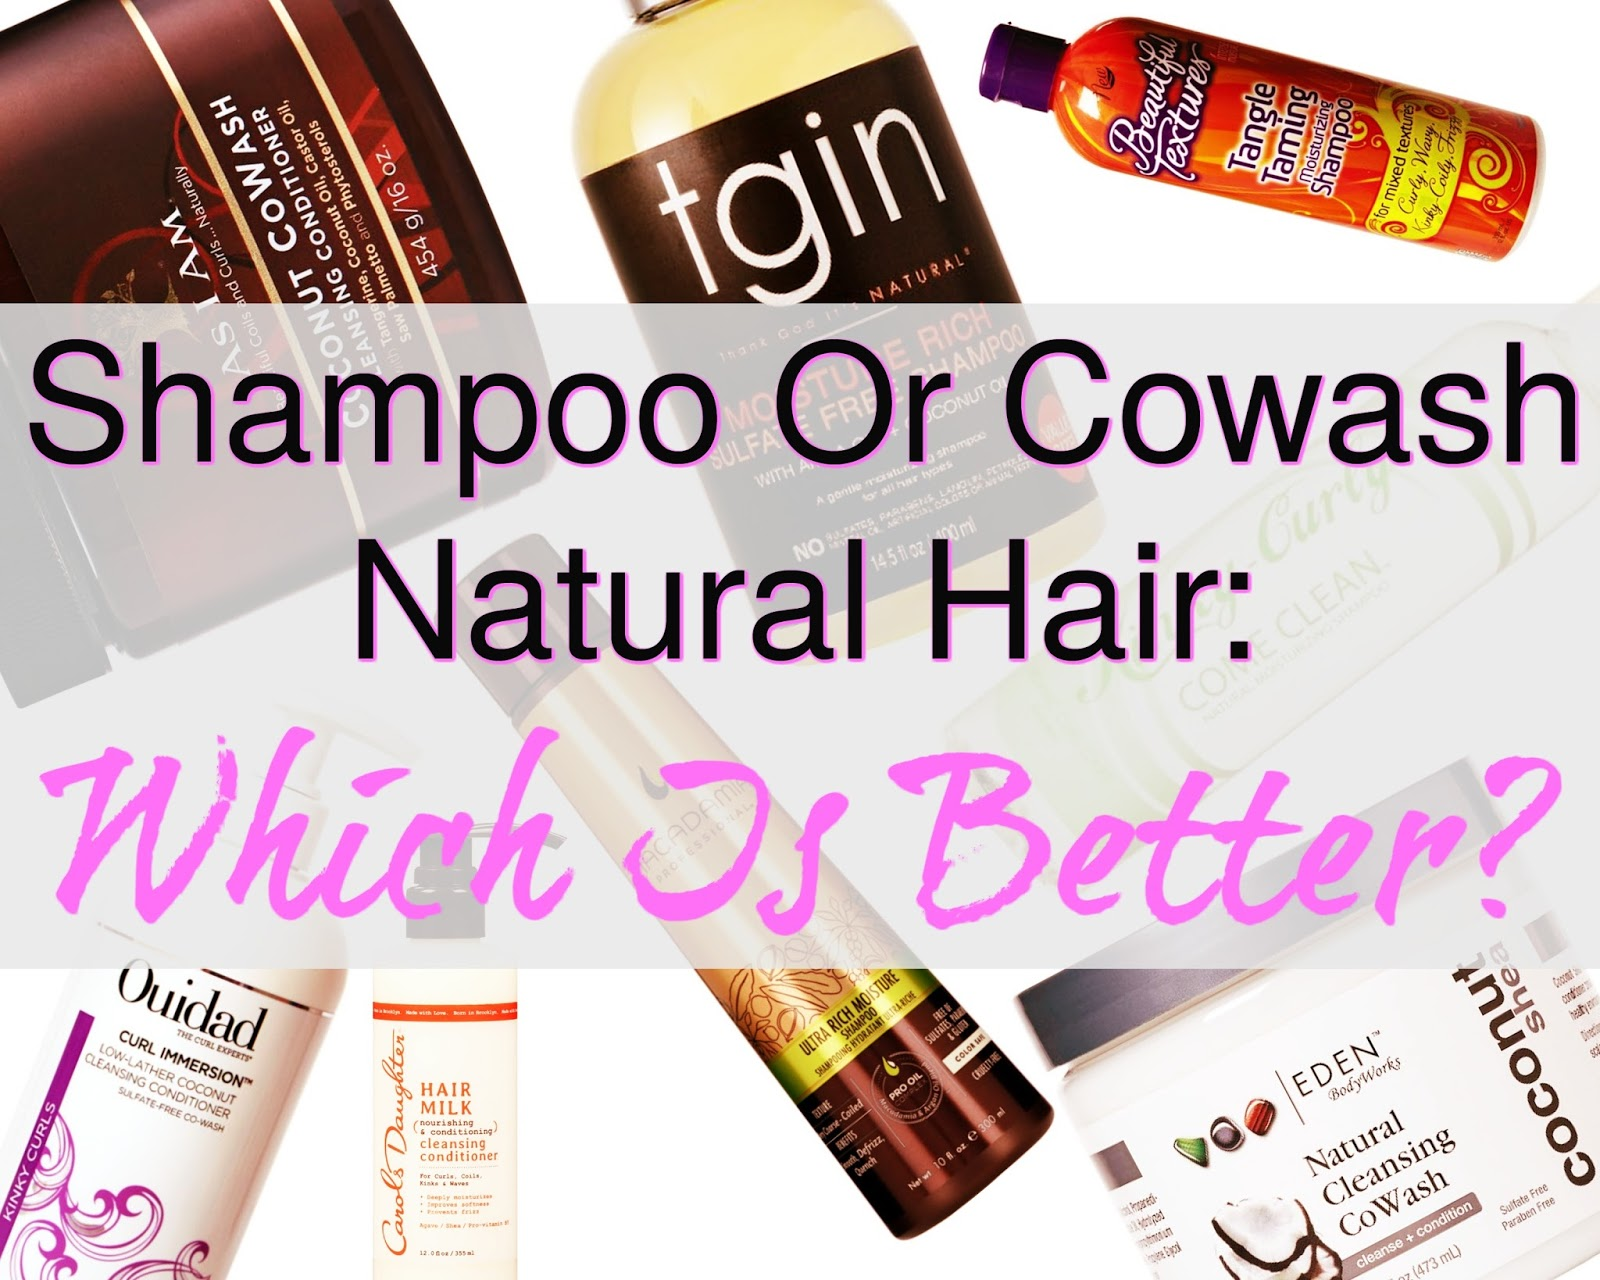 Shampoo Or Cowash Natural Hair: Which Is Better?